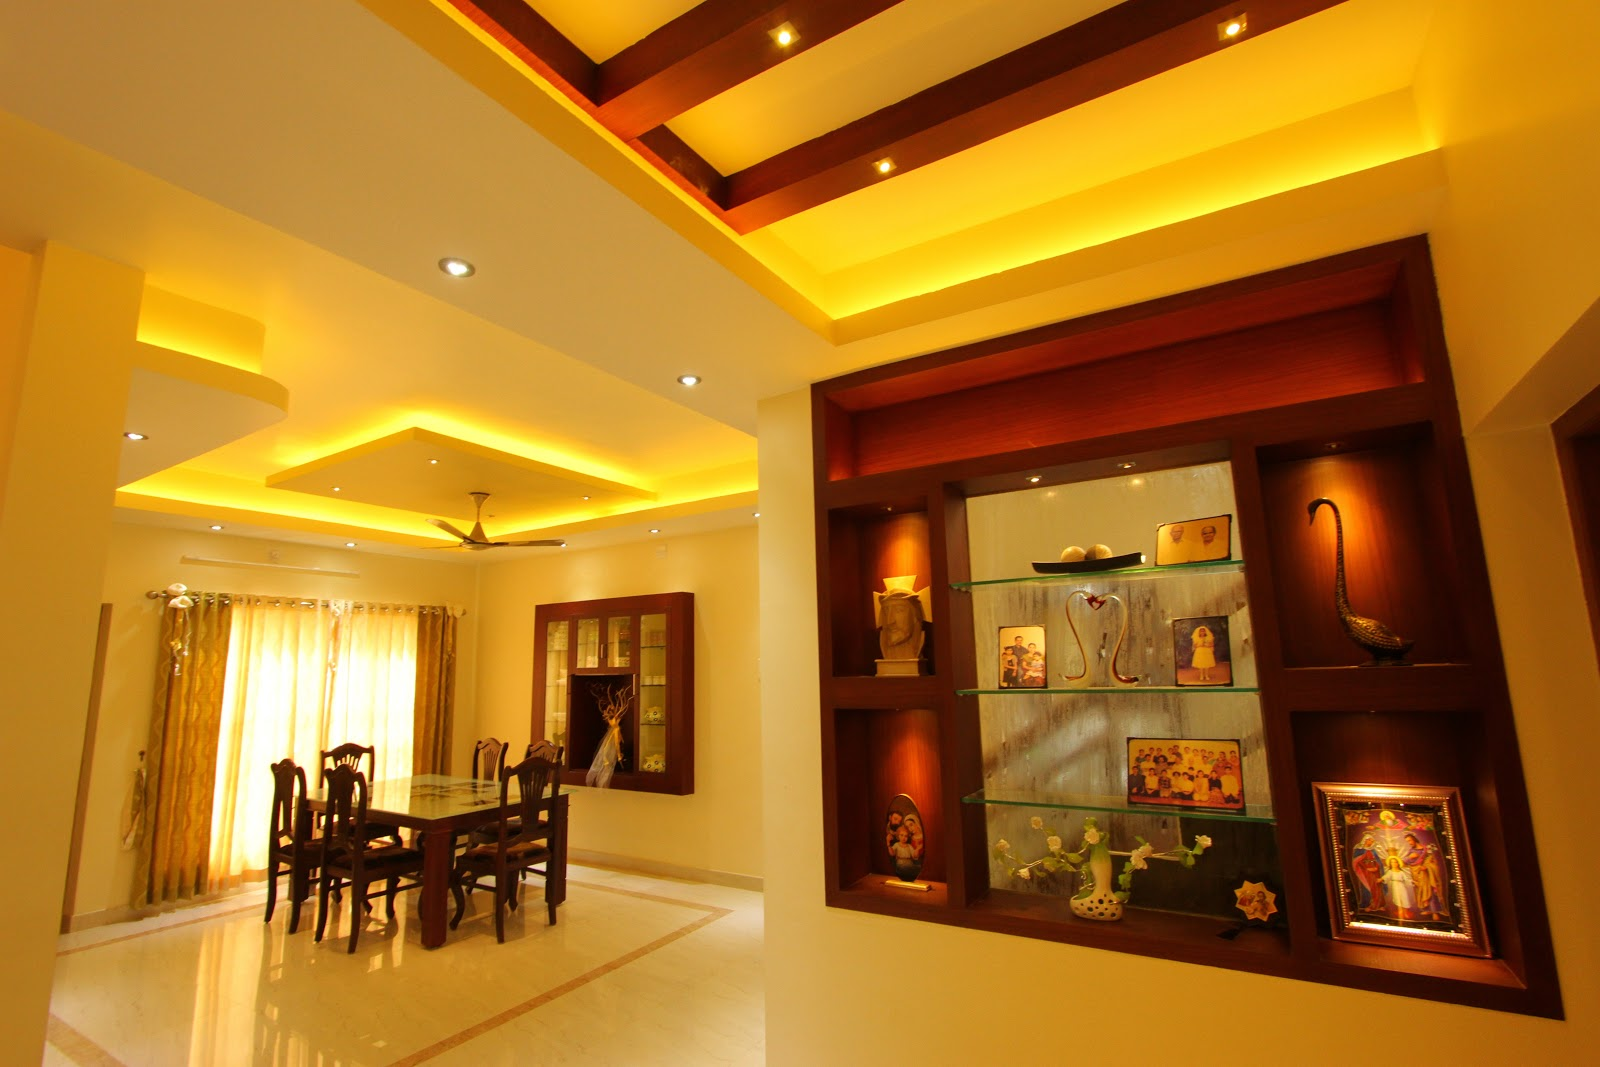 Interior Designing Ideas For Home: Shilpakala Interiors: Award Winning Home : Interior Design